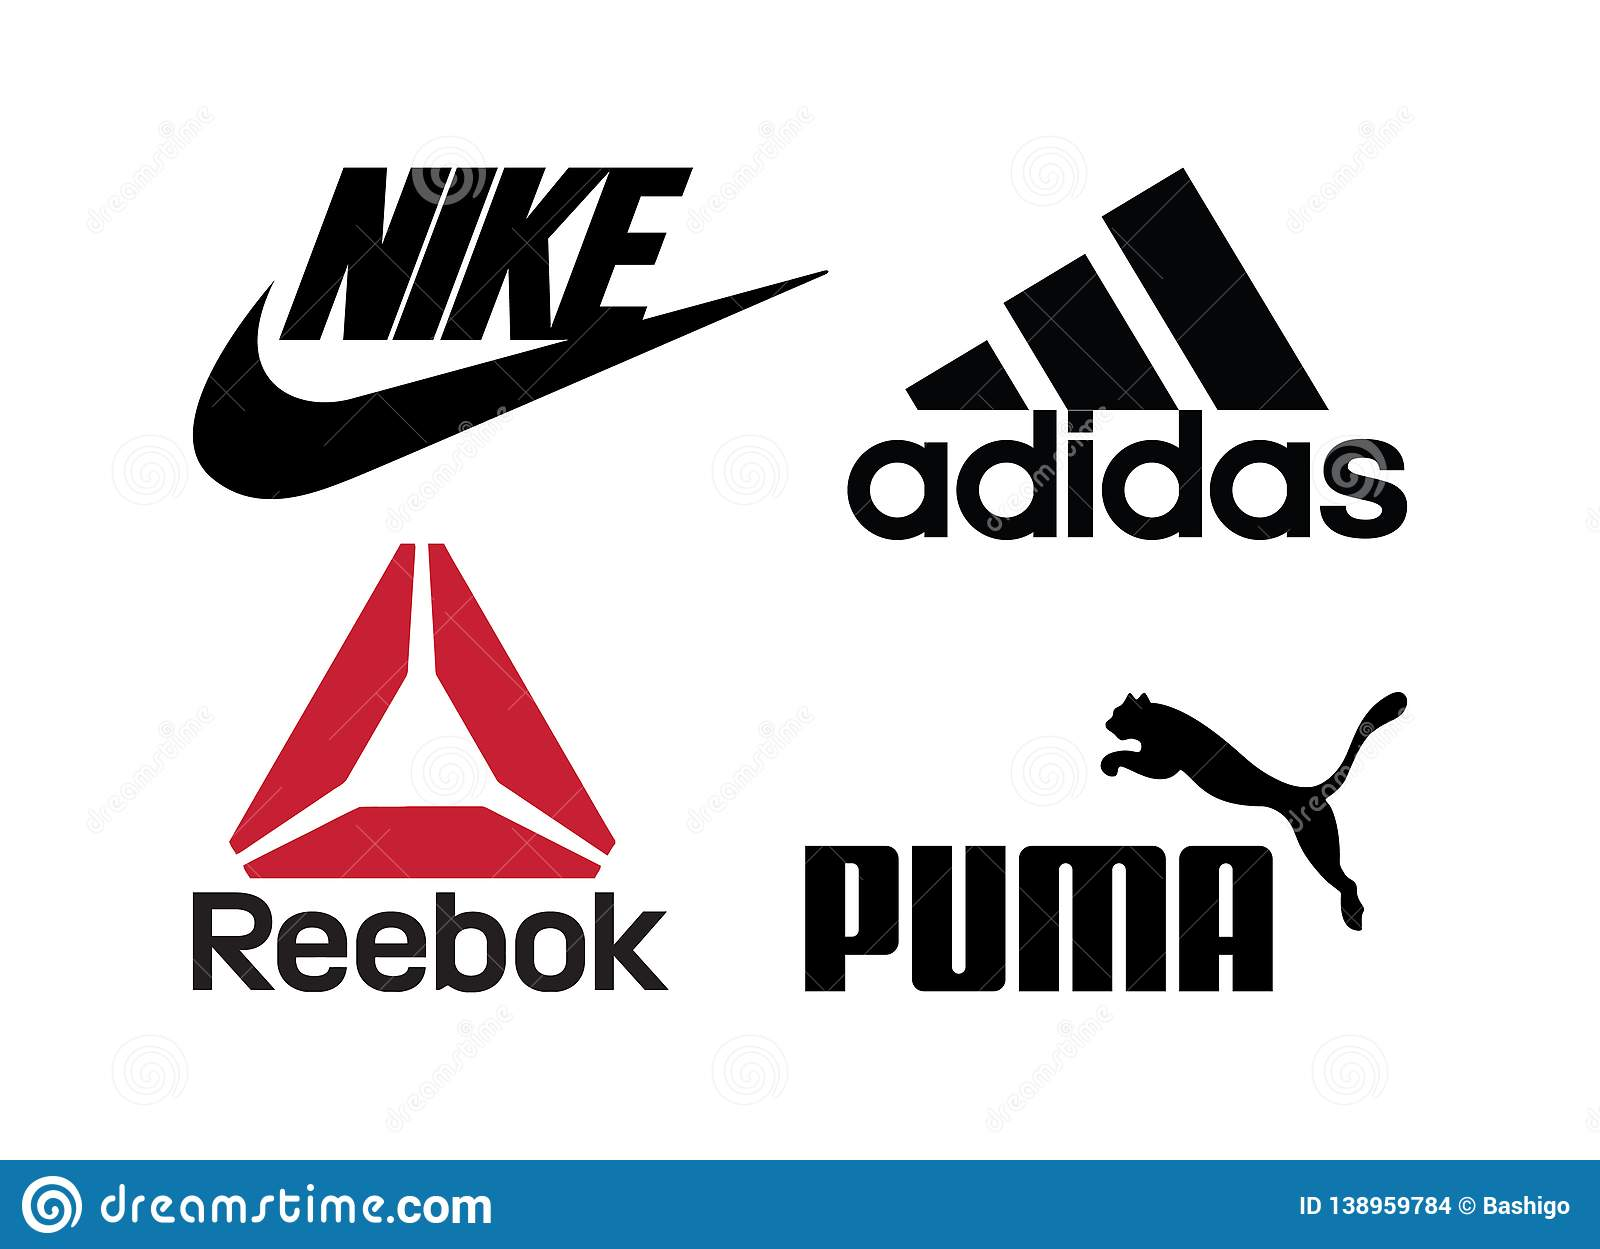 parrilla capacidad empeorar  Set Of Popular Sportswear Manufactures Logos Printed On Paper: Adidas,Nike,Reebok,Puma  Editorial Stock Image - Illustration of editorial, nike: 138959784